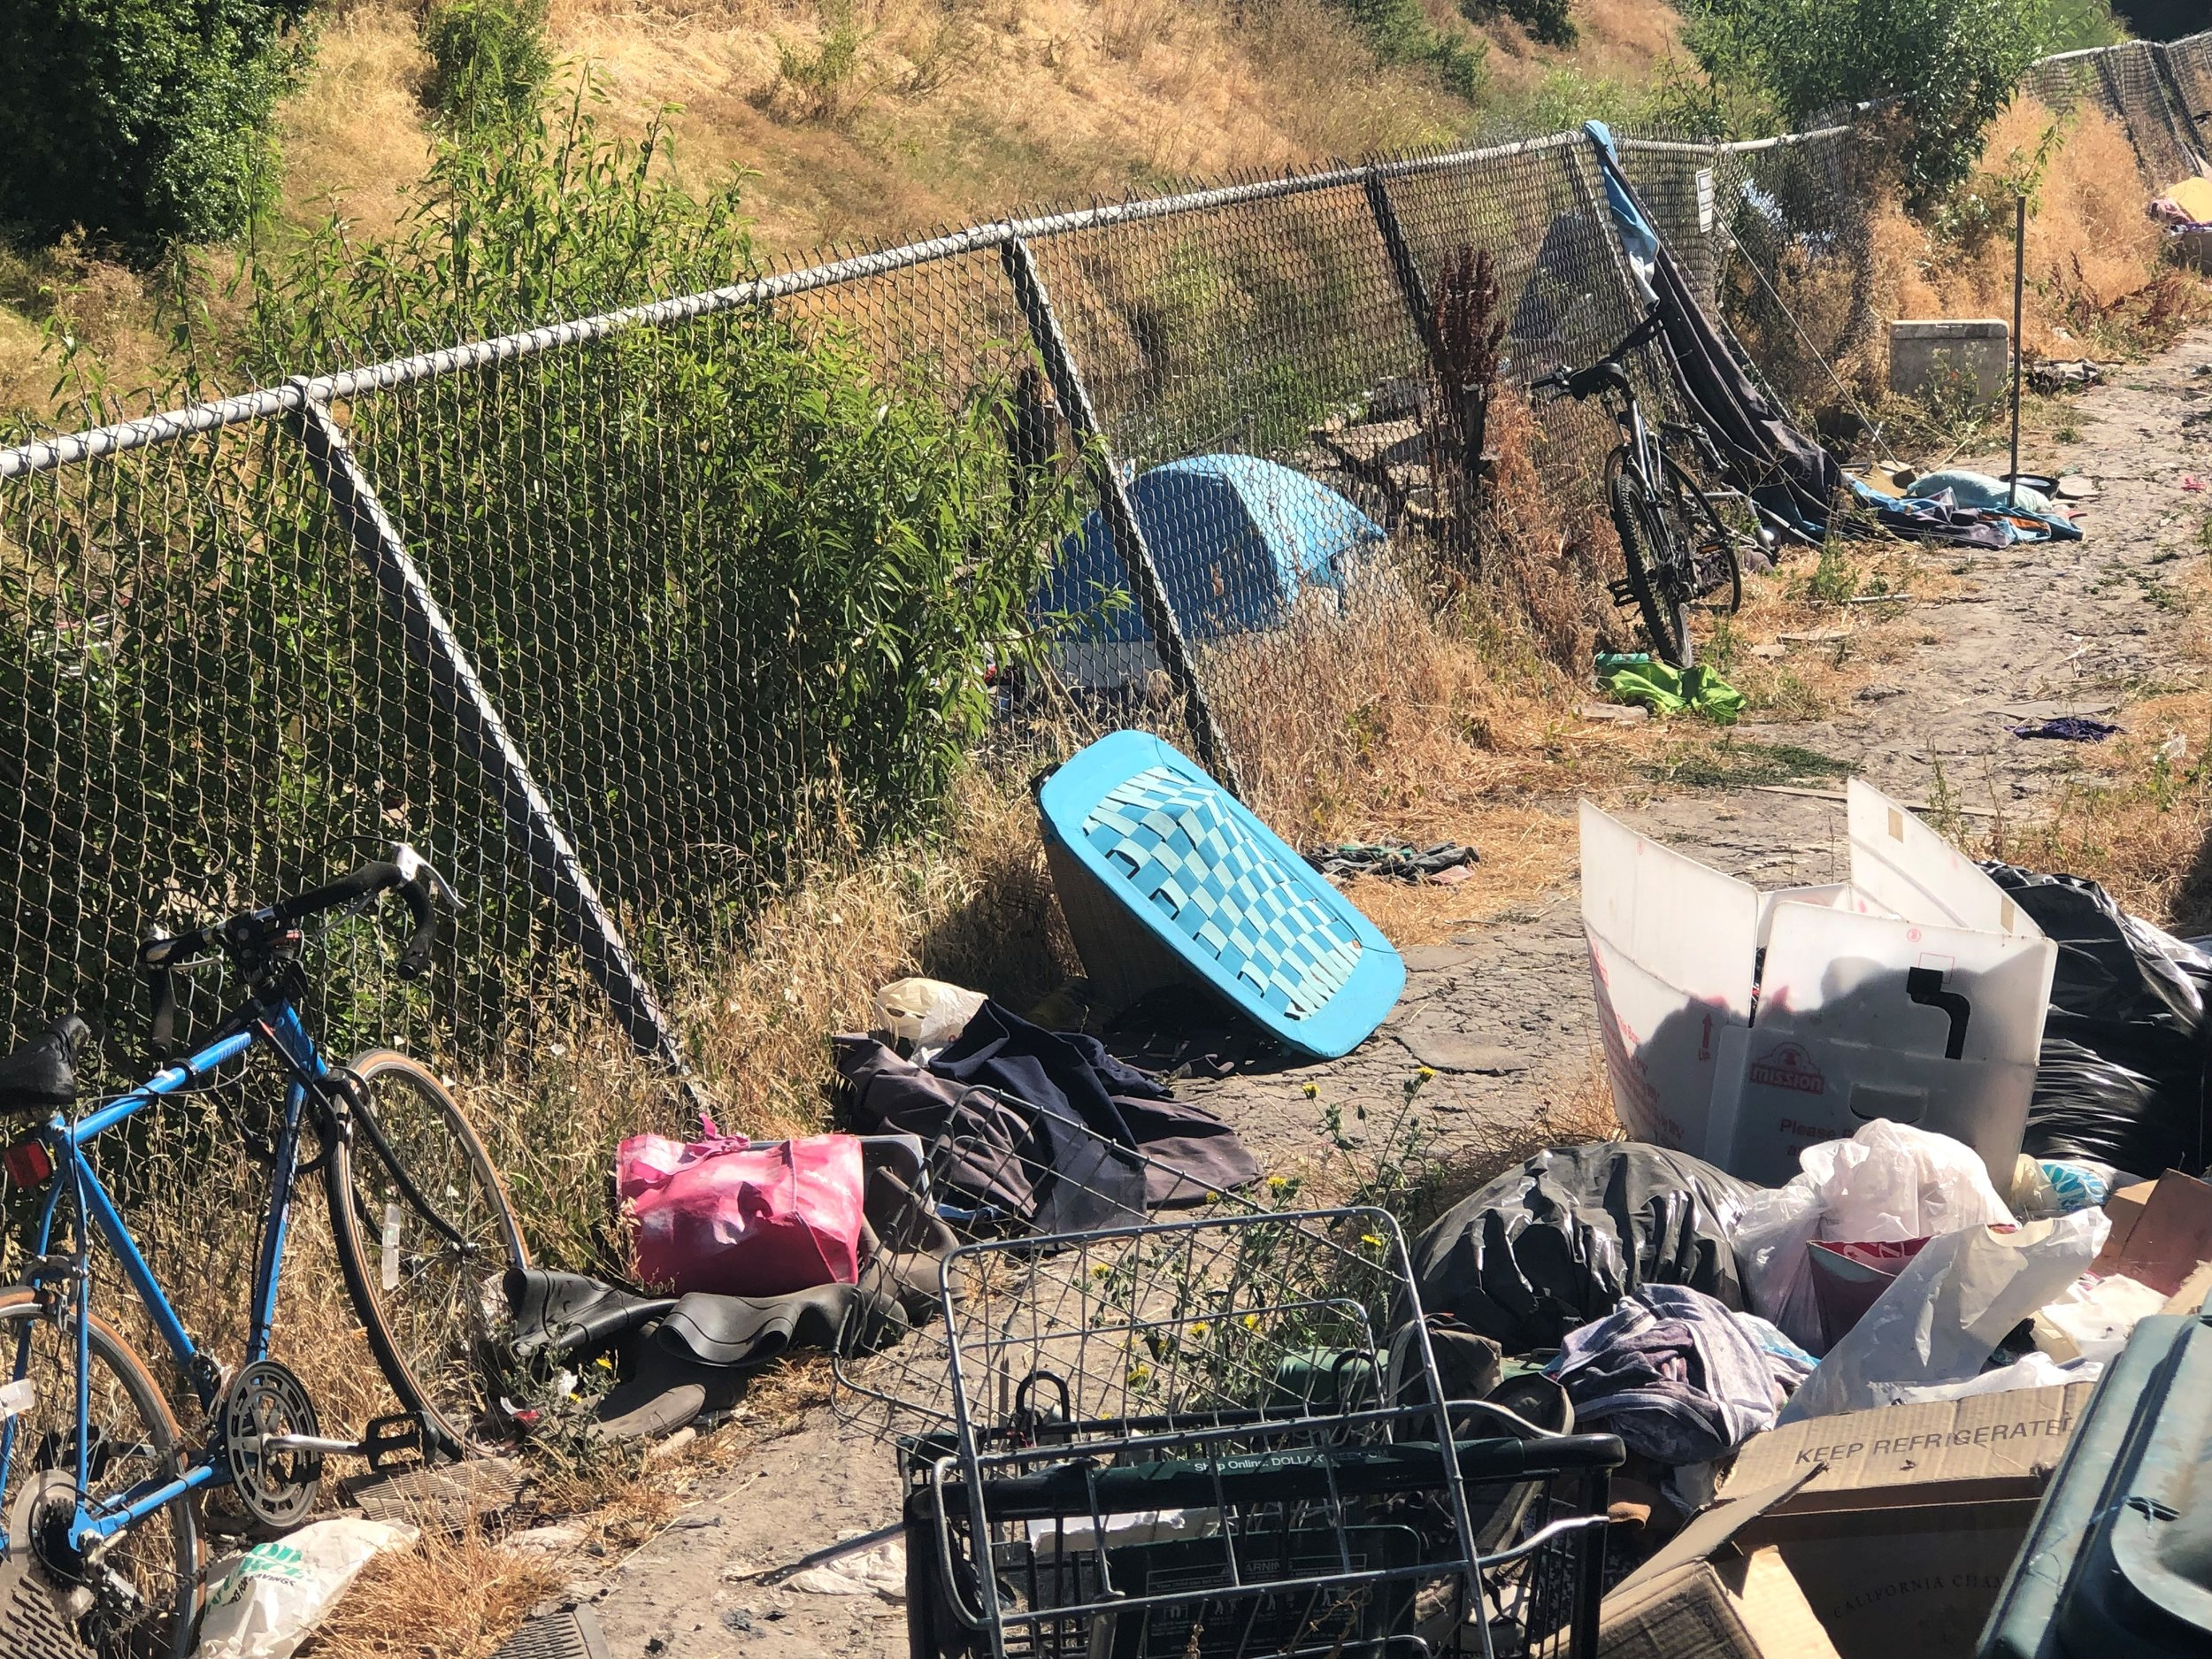 A homeless camp along Elder Creek in south Sacramento